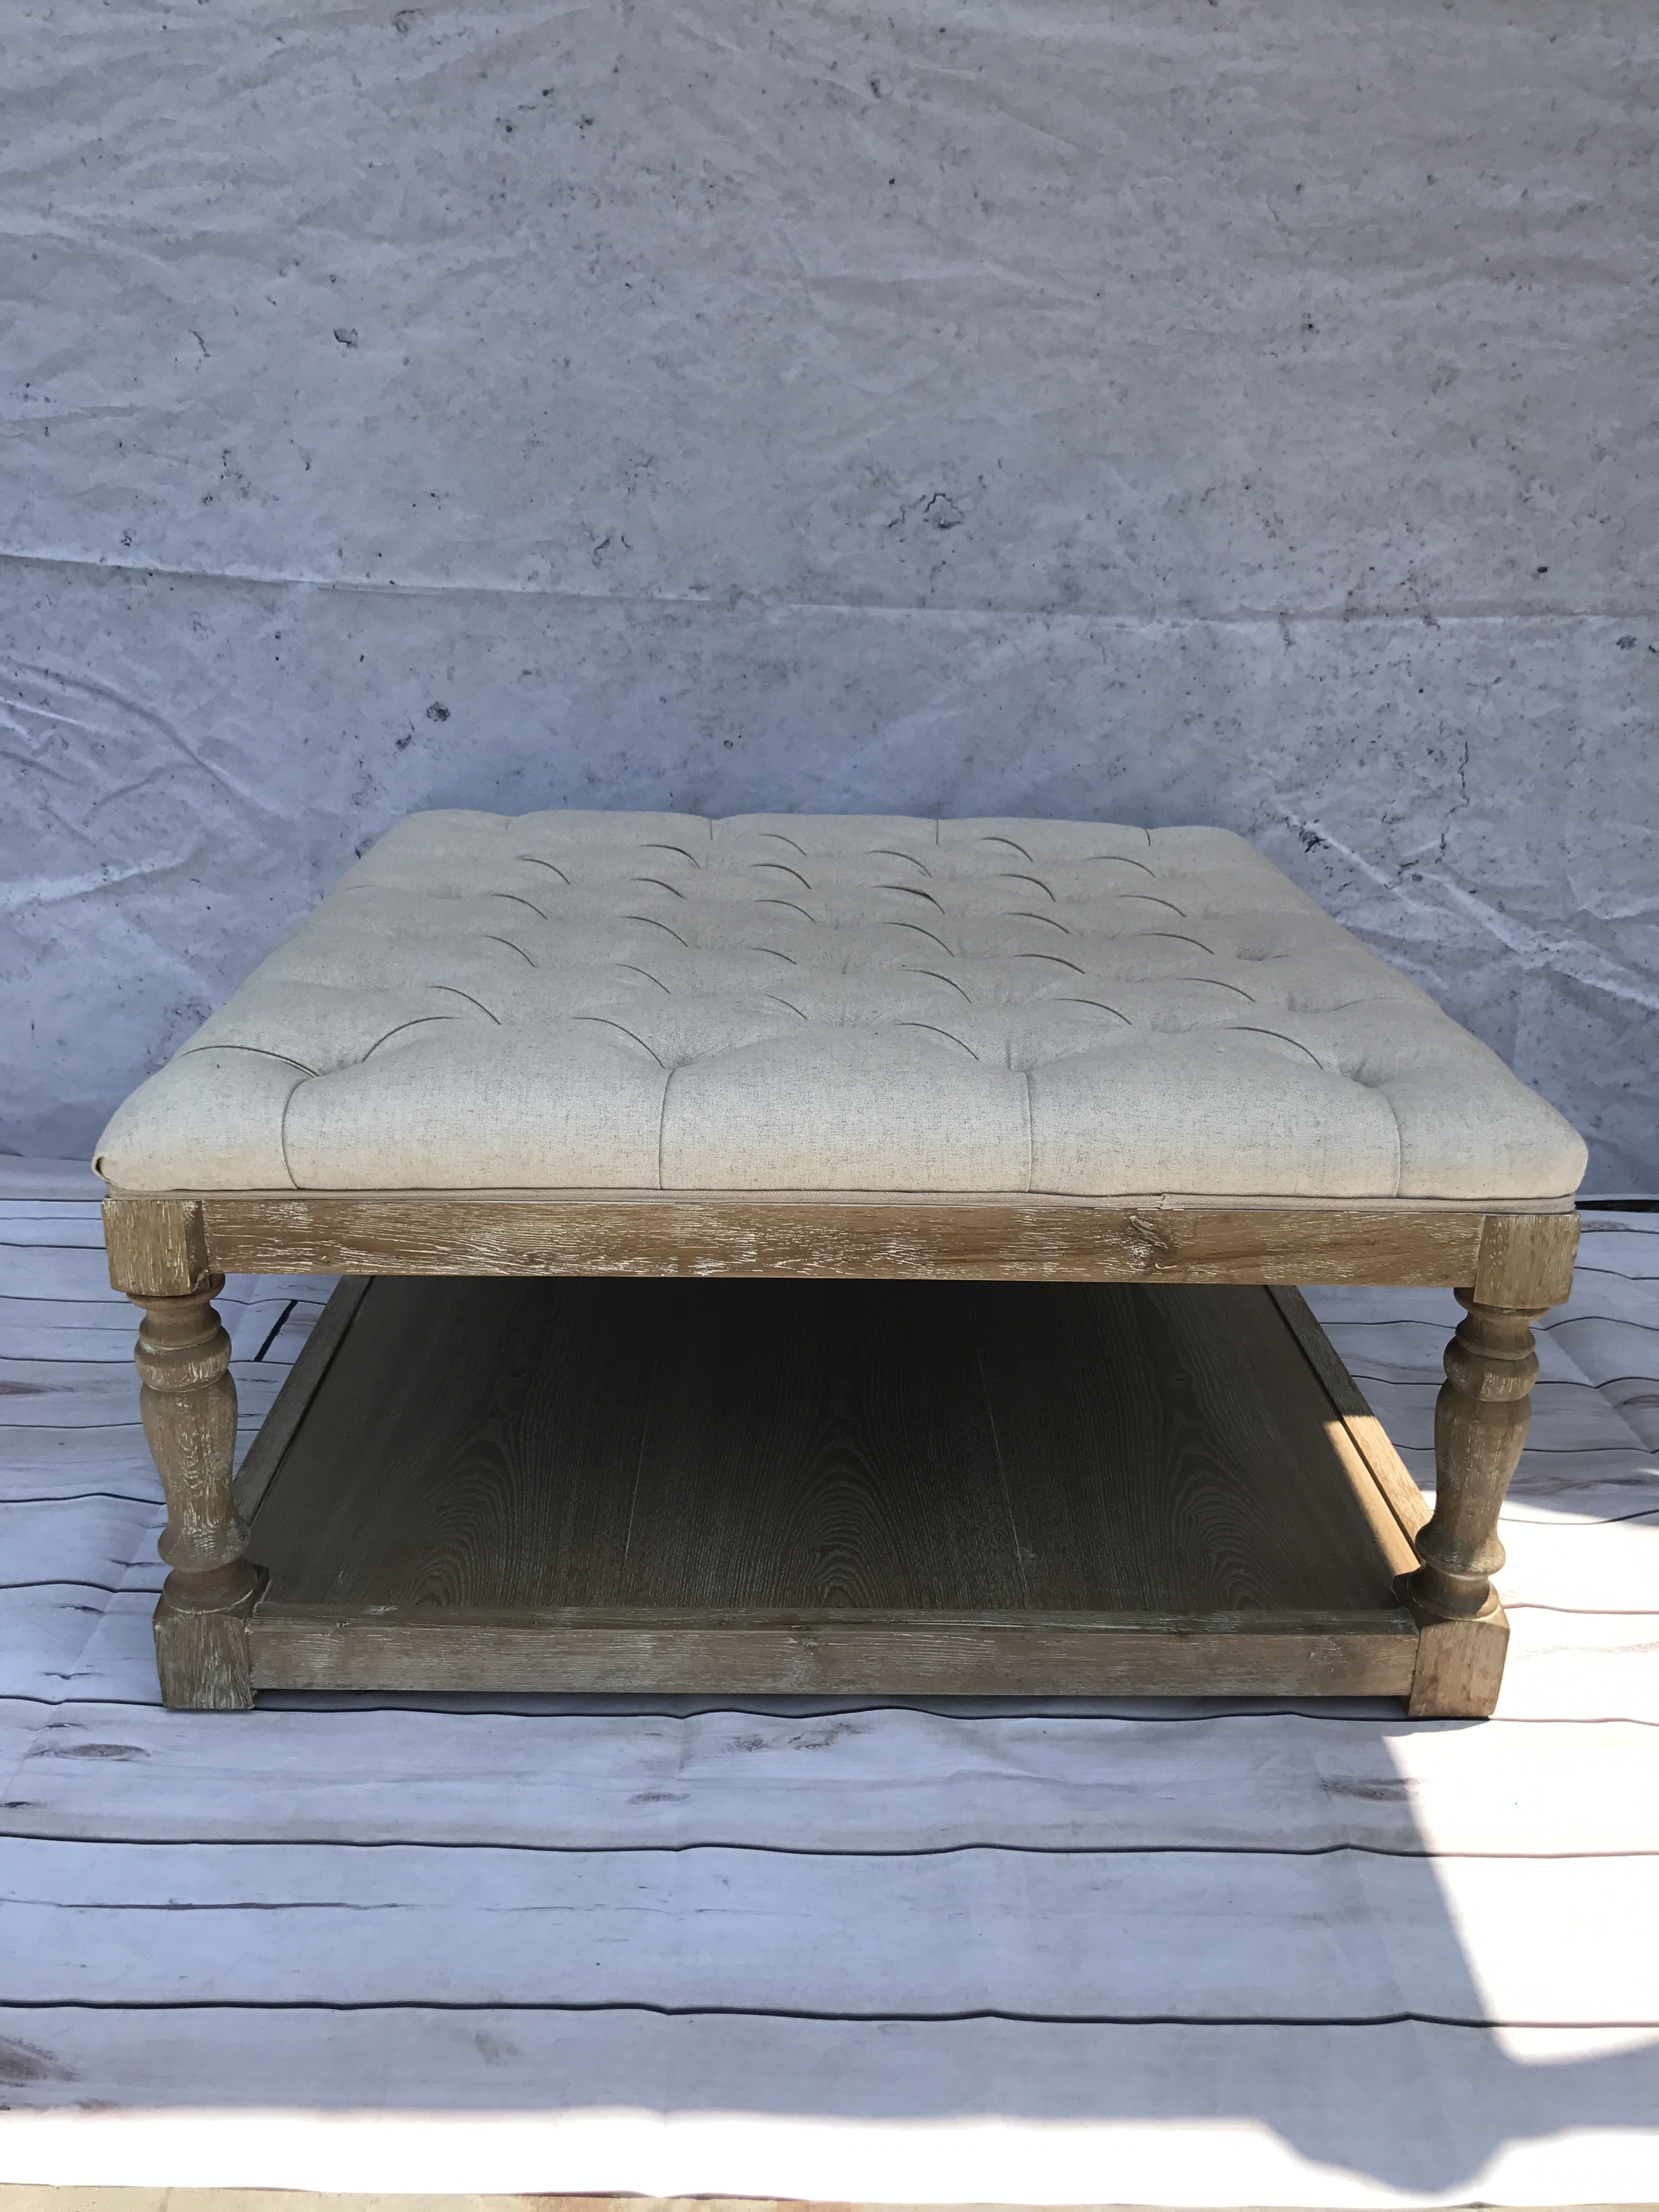 Custom Height Living Room French Style Ottoman Bench Sofa, Home Wooden Ottoman Vintage Benches